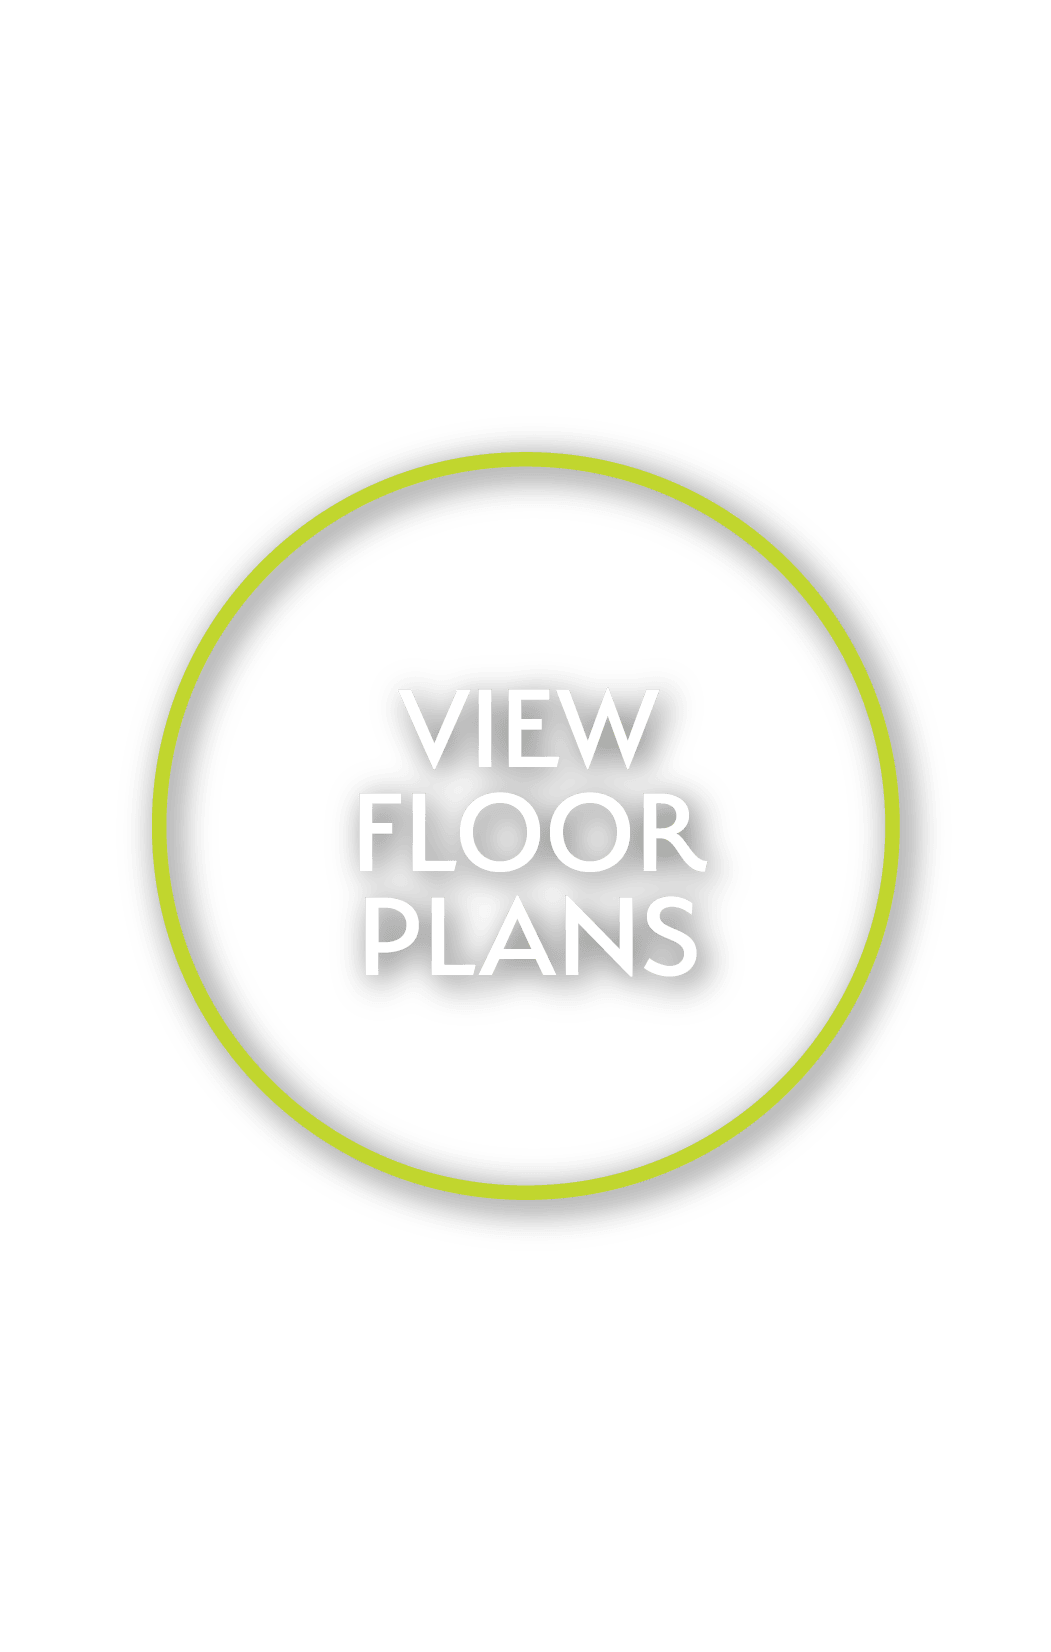 View floor plans at The View at Lakeside in Lewisville, Texas